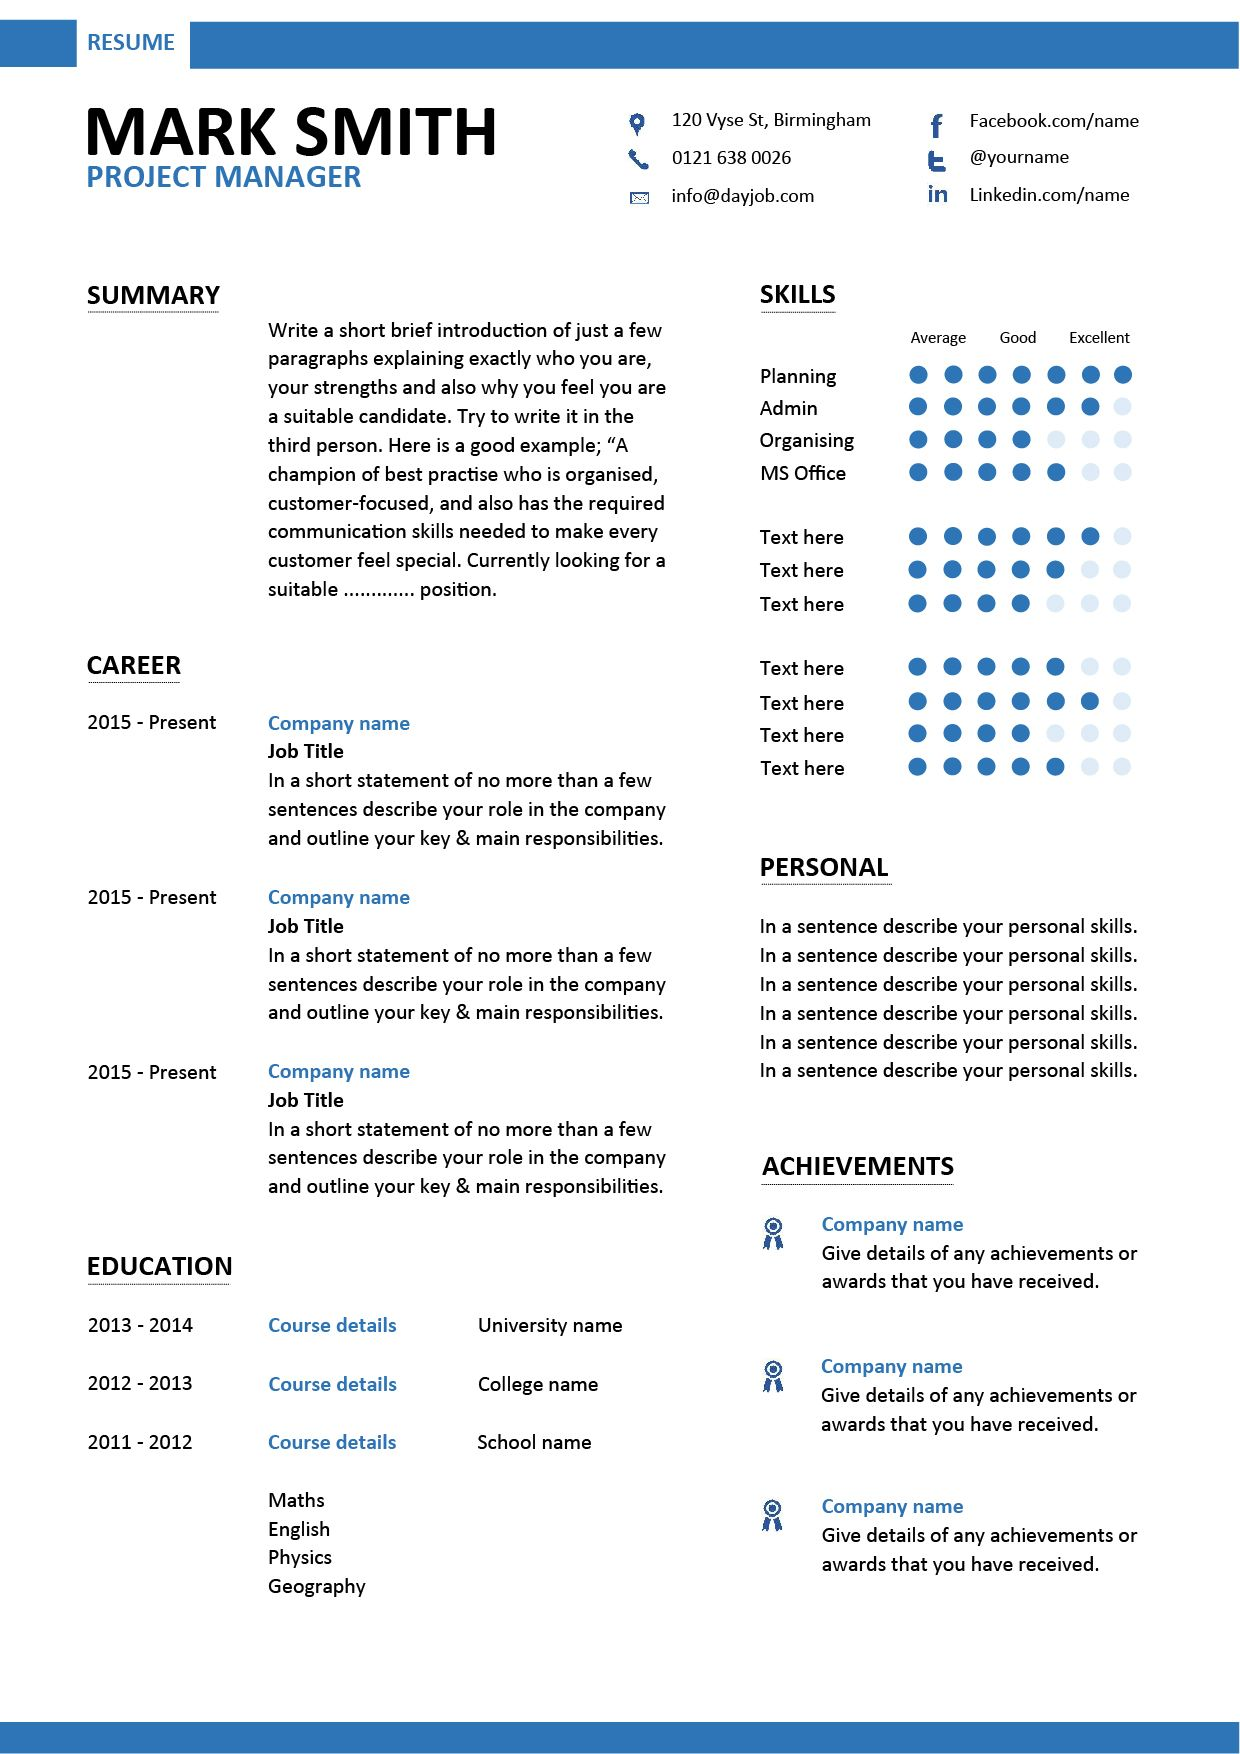 A Project Manager Resume That Has A Modern Design And Layout